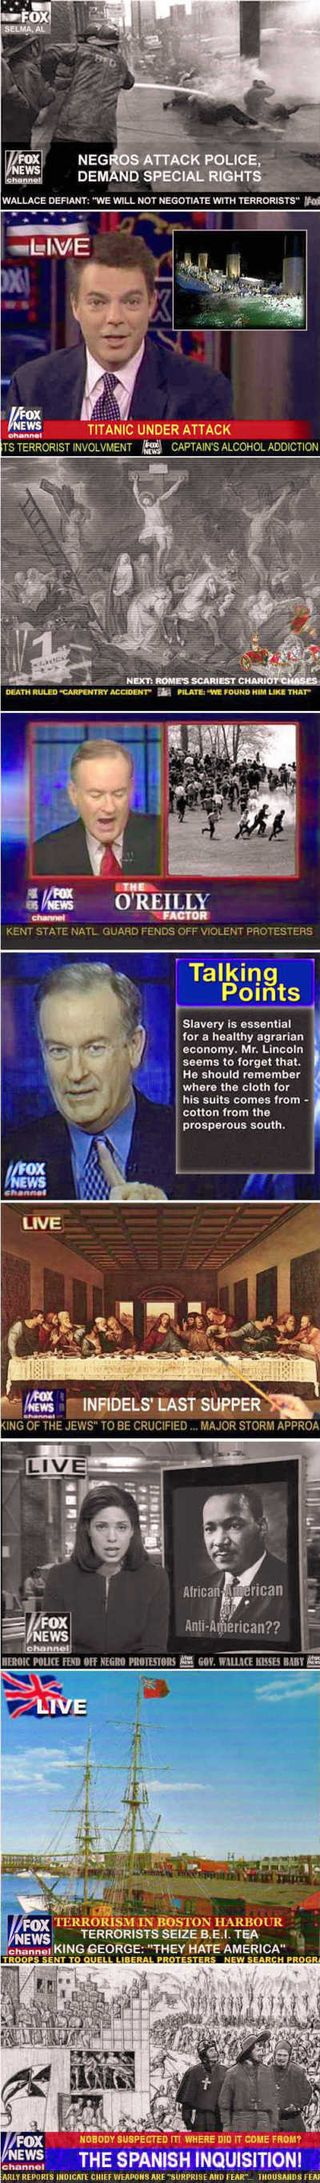 Fox news history cr